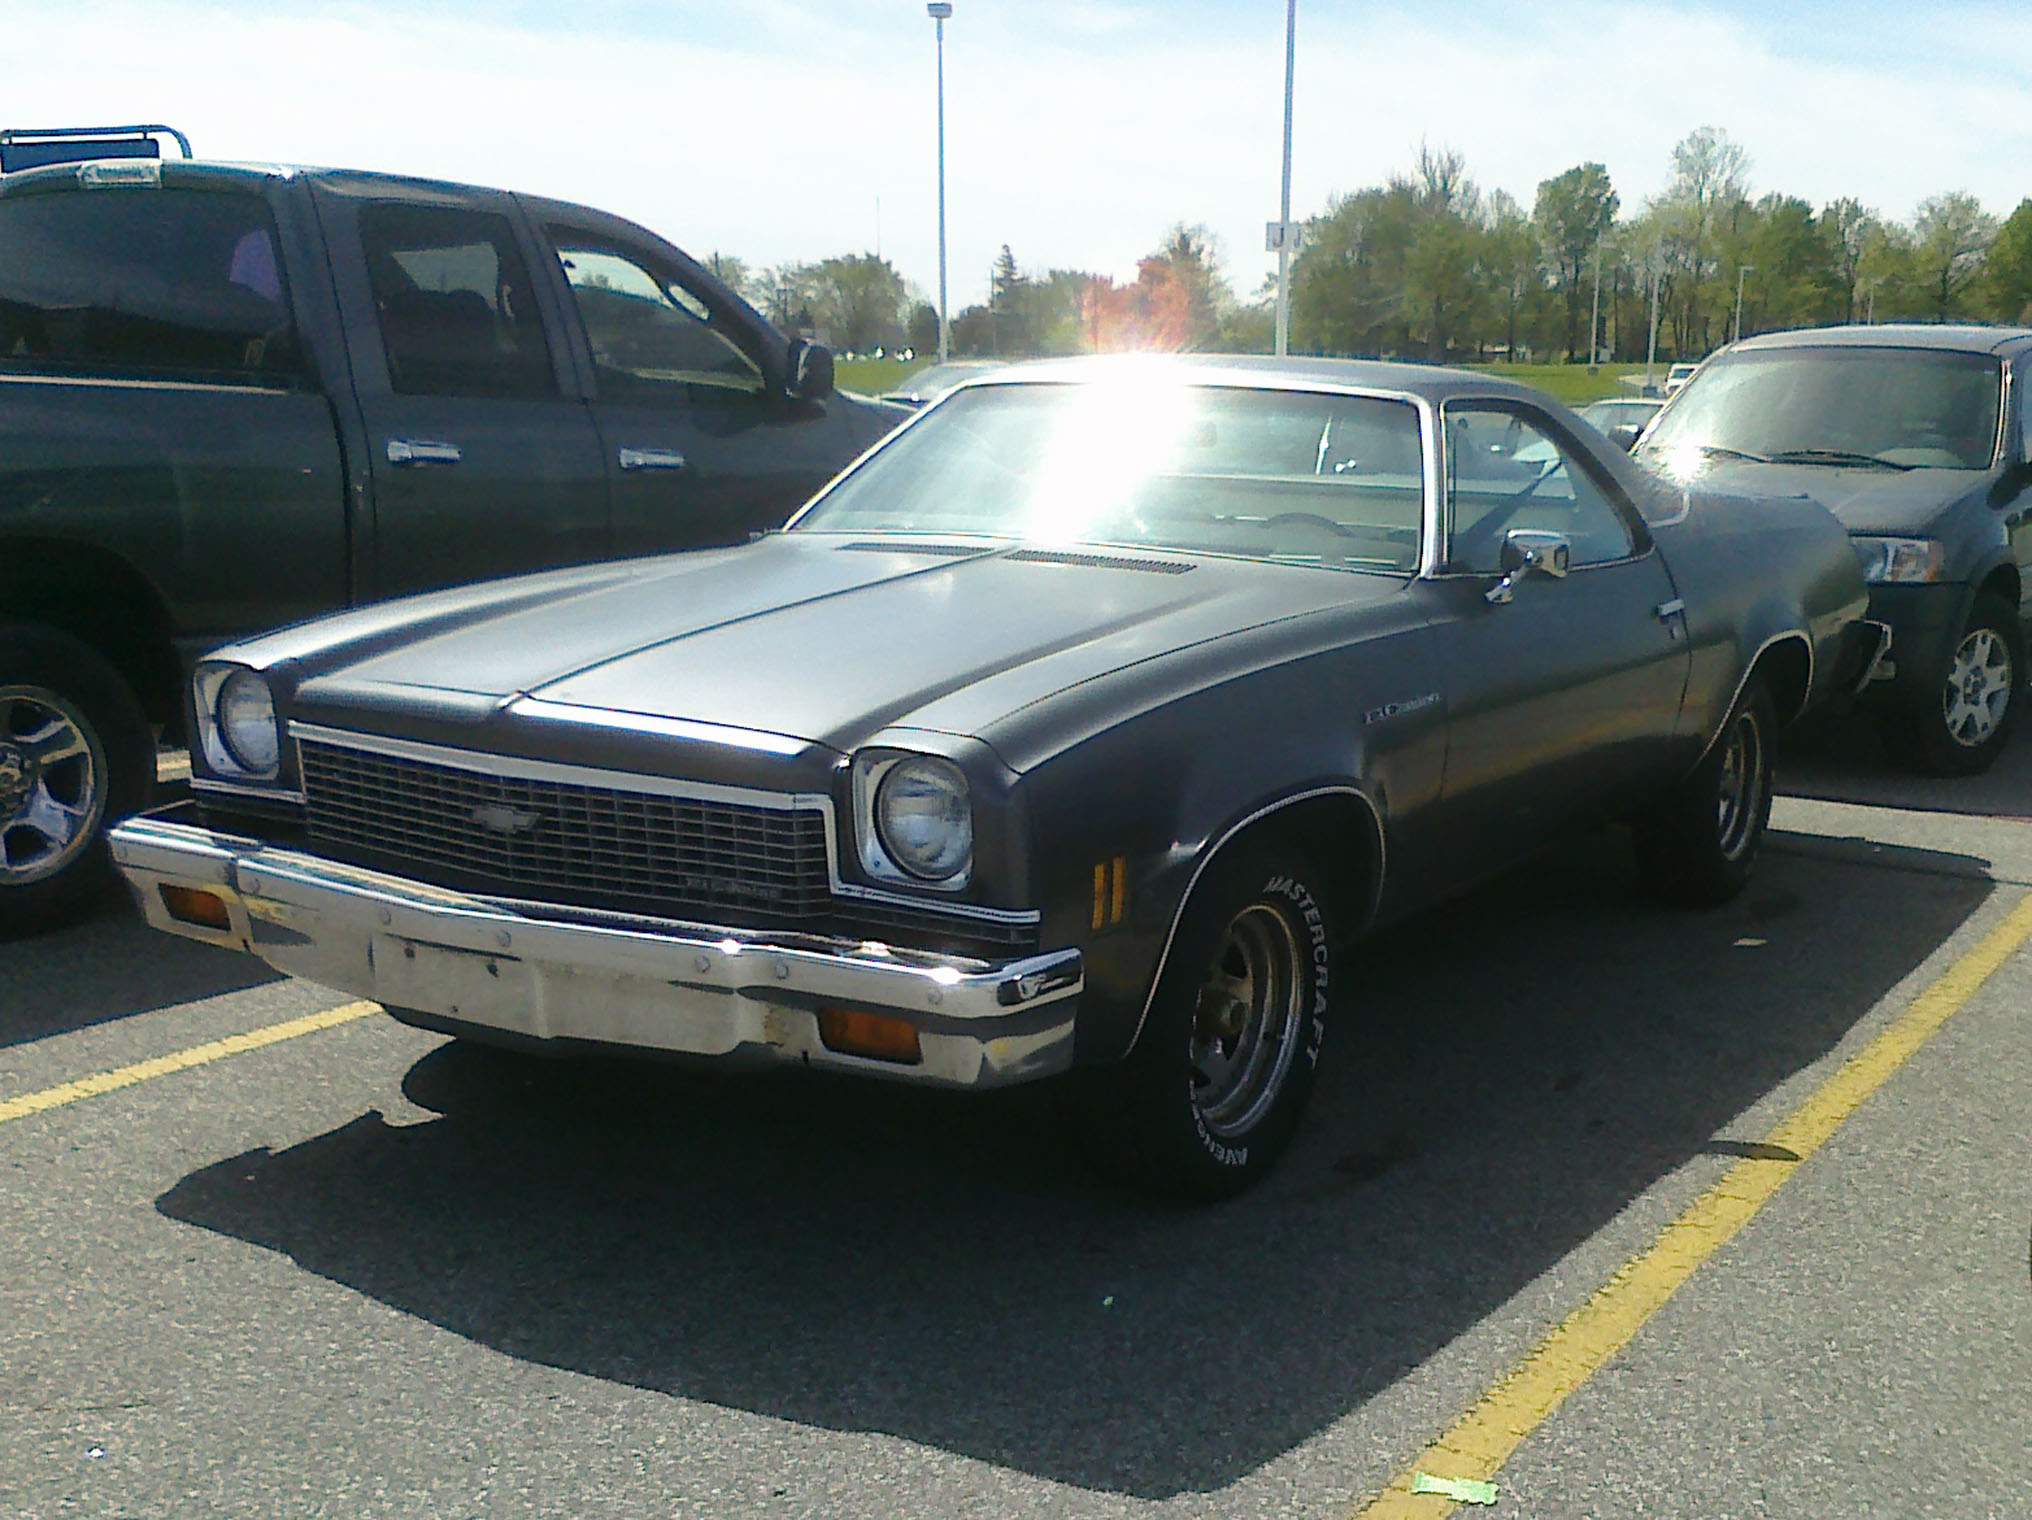 1973 Chevrolet El Camino | Flickr - Photo Sharing!